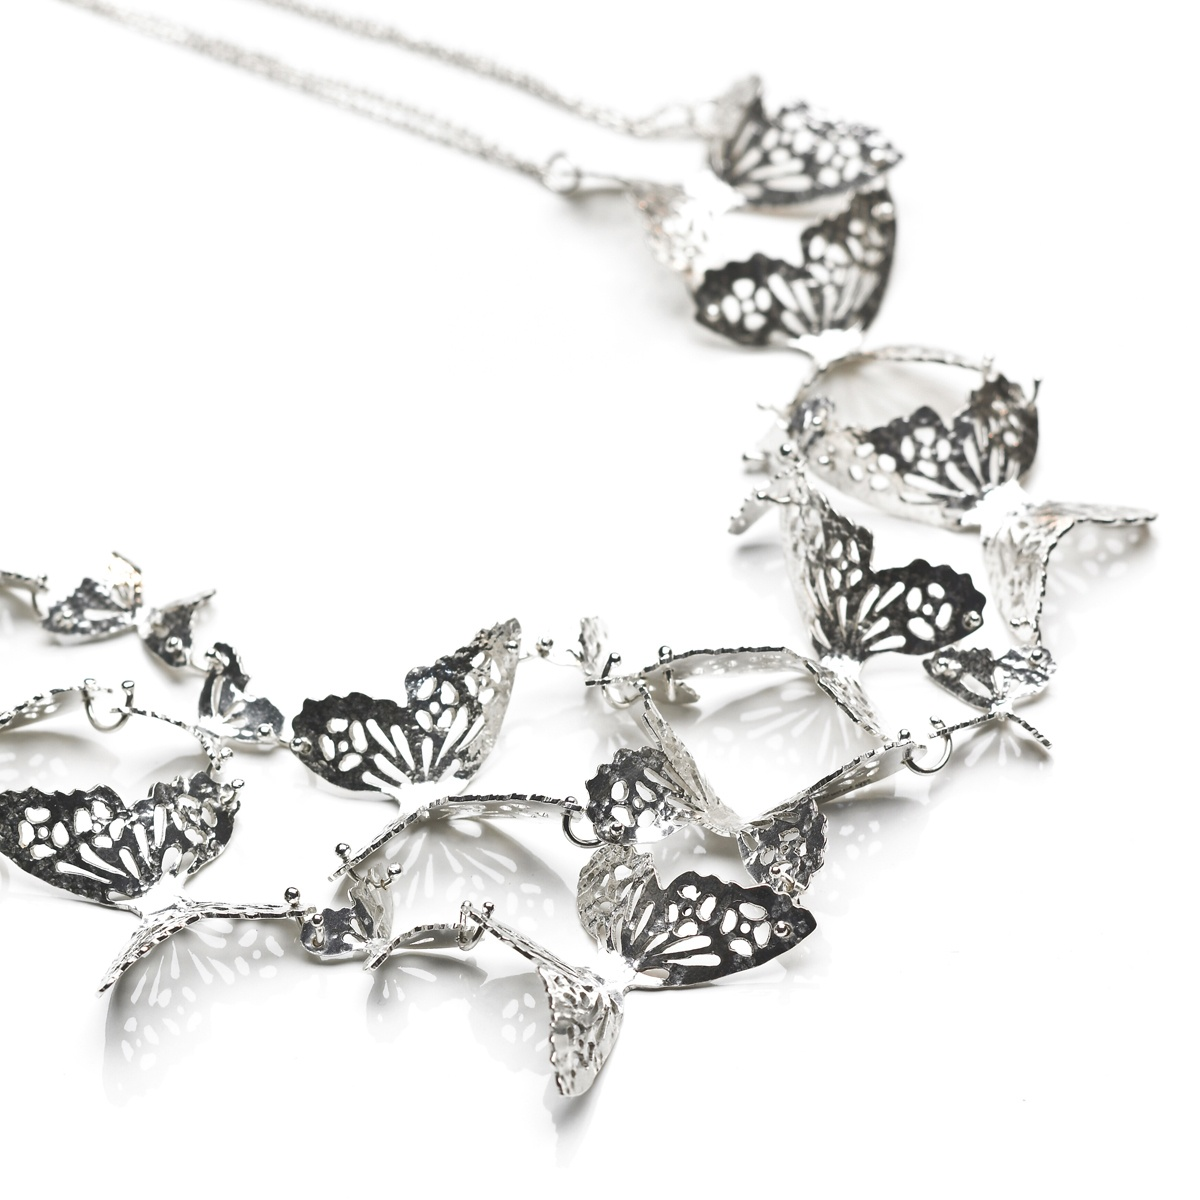 Delicate yet striking this Large Multi Butterfly necklace features handmade textured butterflies linked together to make the most stunning statement necklace